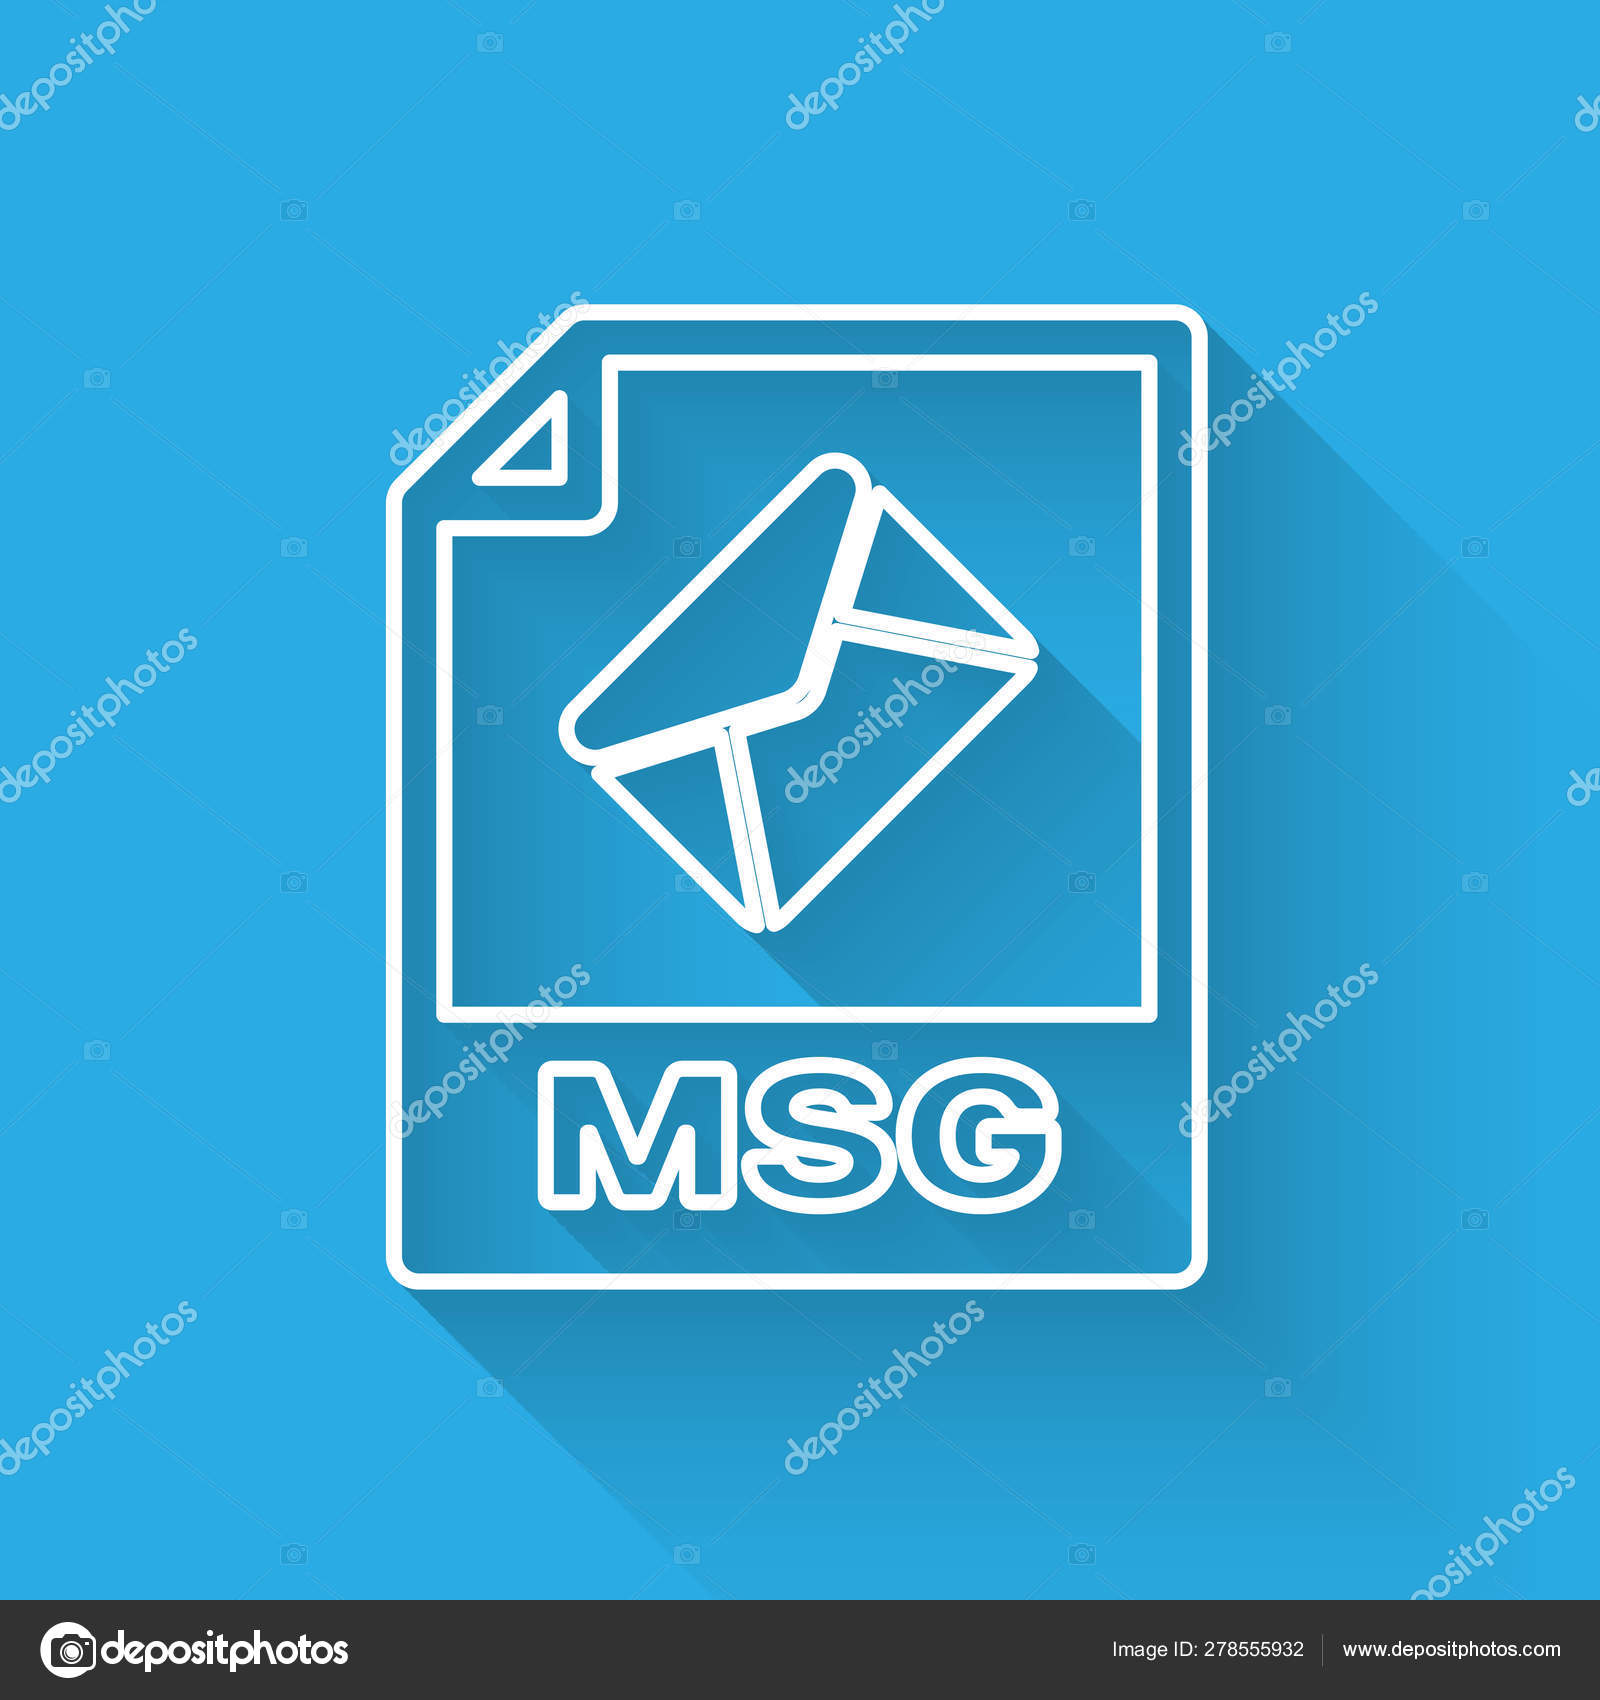 White MSG file document icon  Download msg button line icon isolated